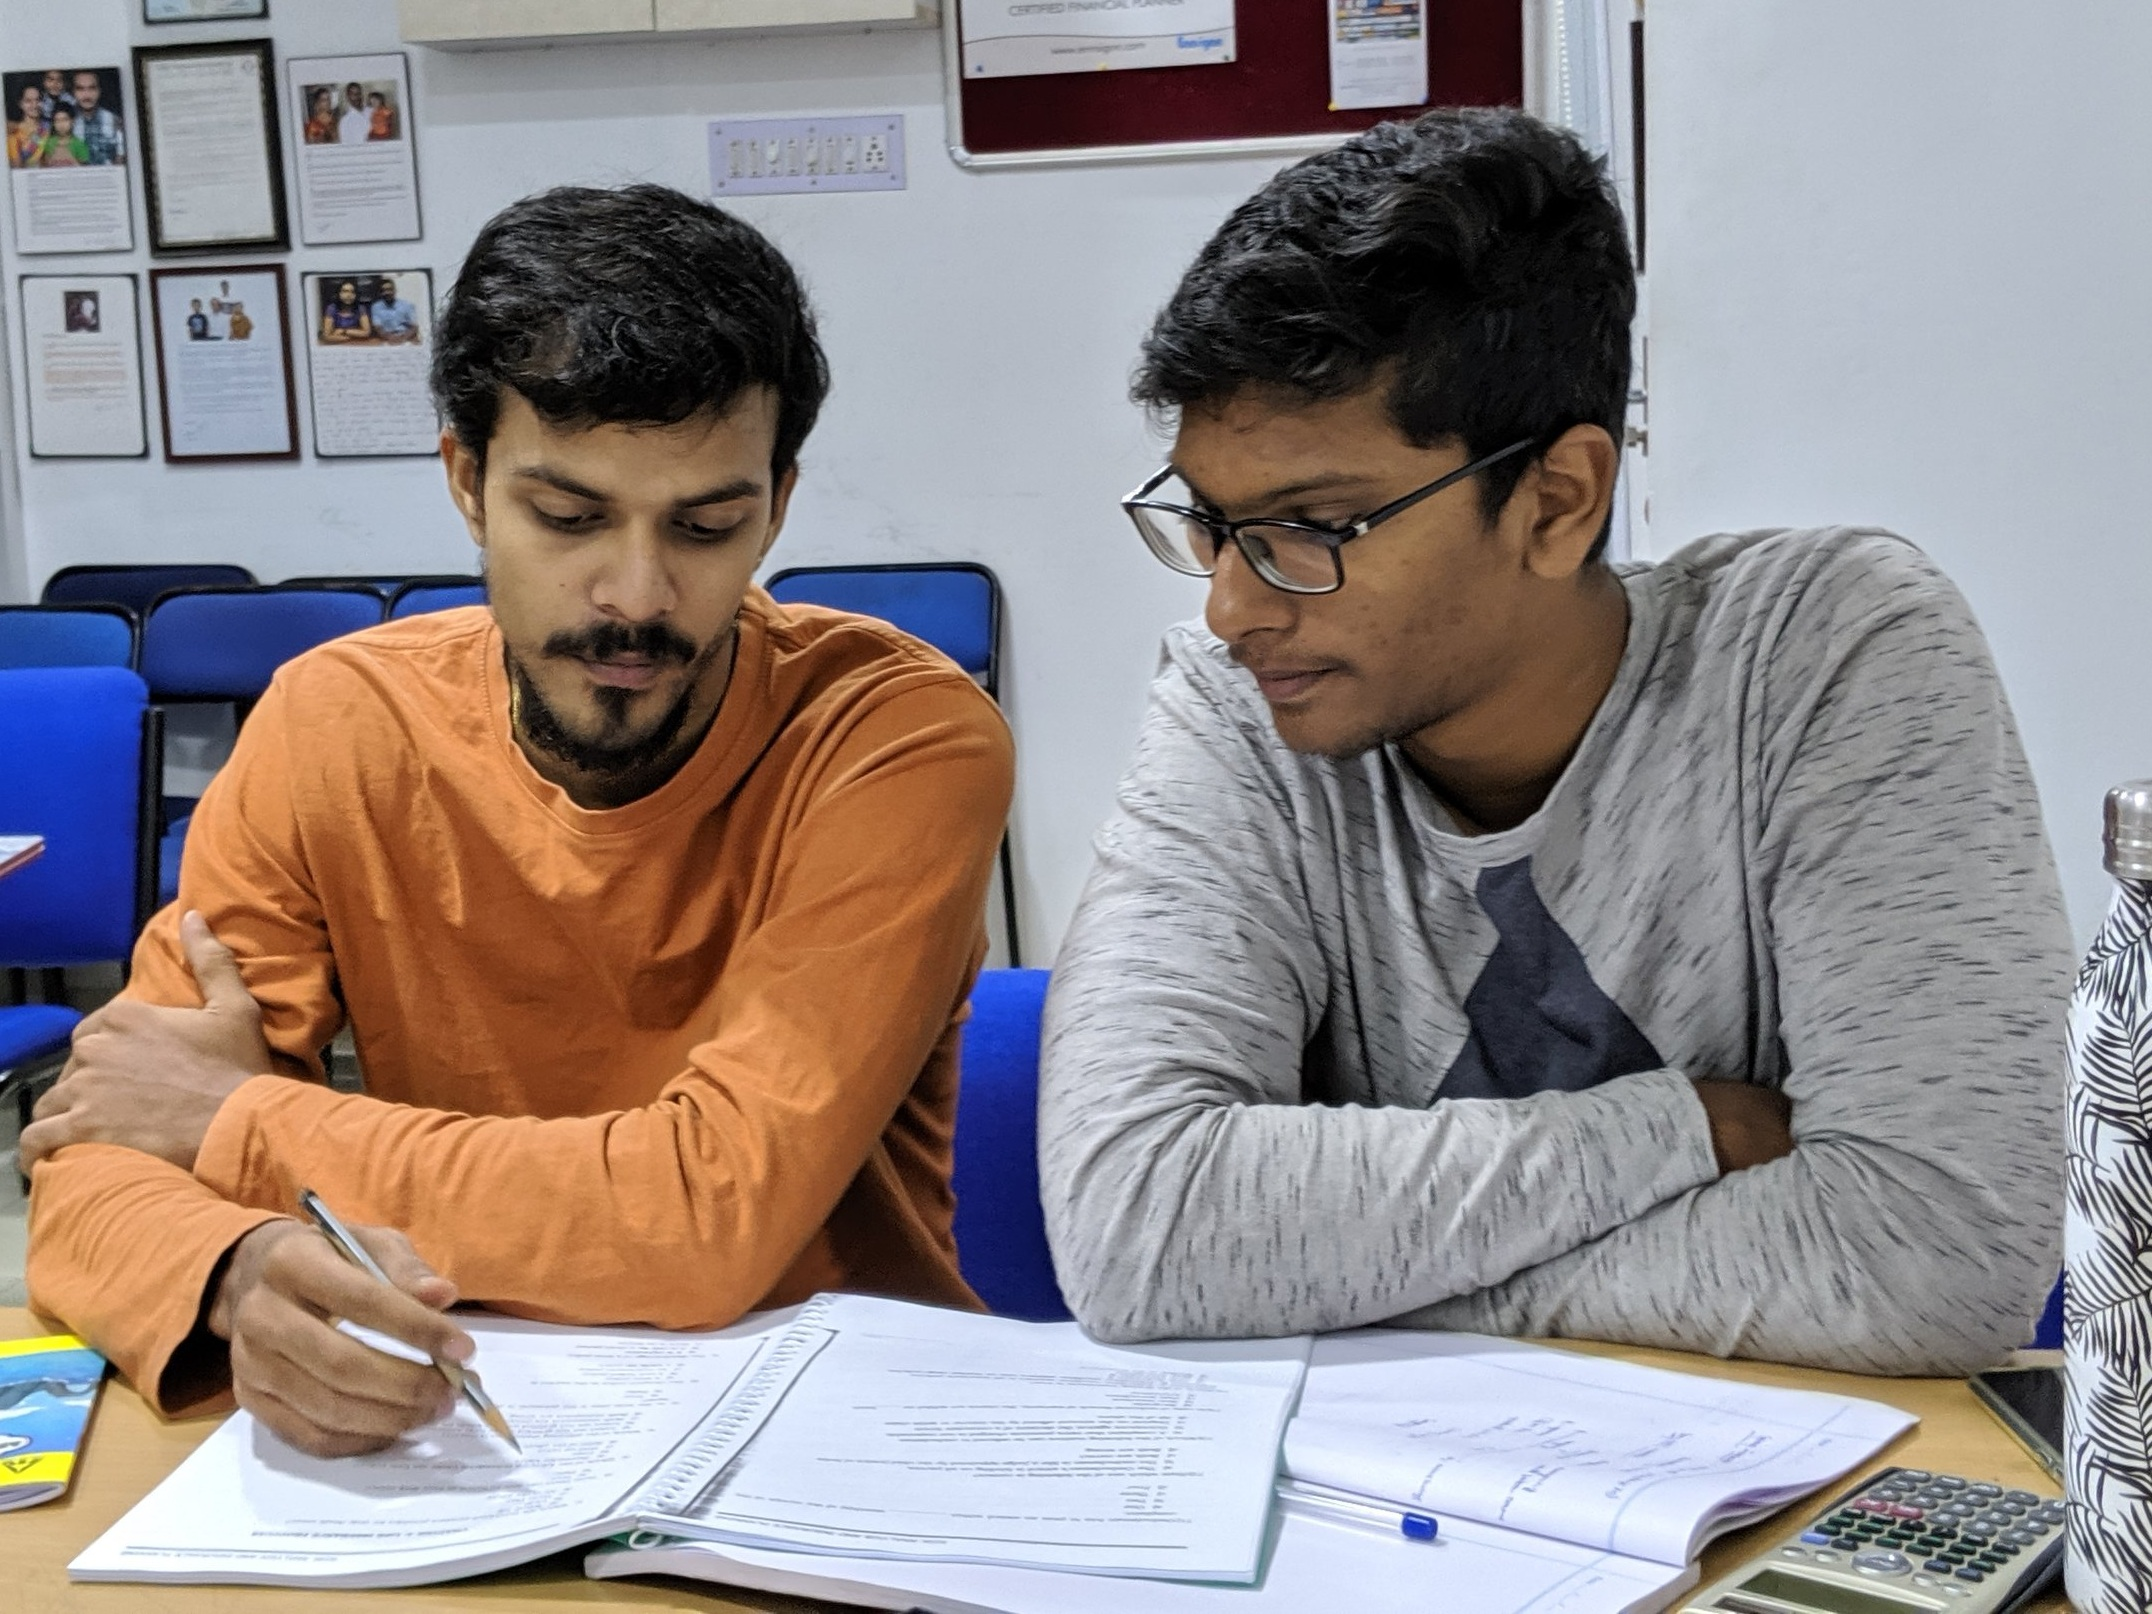 Study groups - We encourage our students to come in to study even when classes are not in session. Students learn and support each other. Also since faculty are always present, this gives students plenty of opportunity to clear doubts as and when they come up.